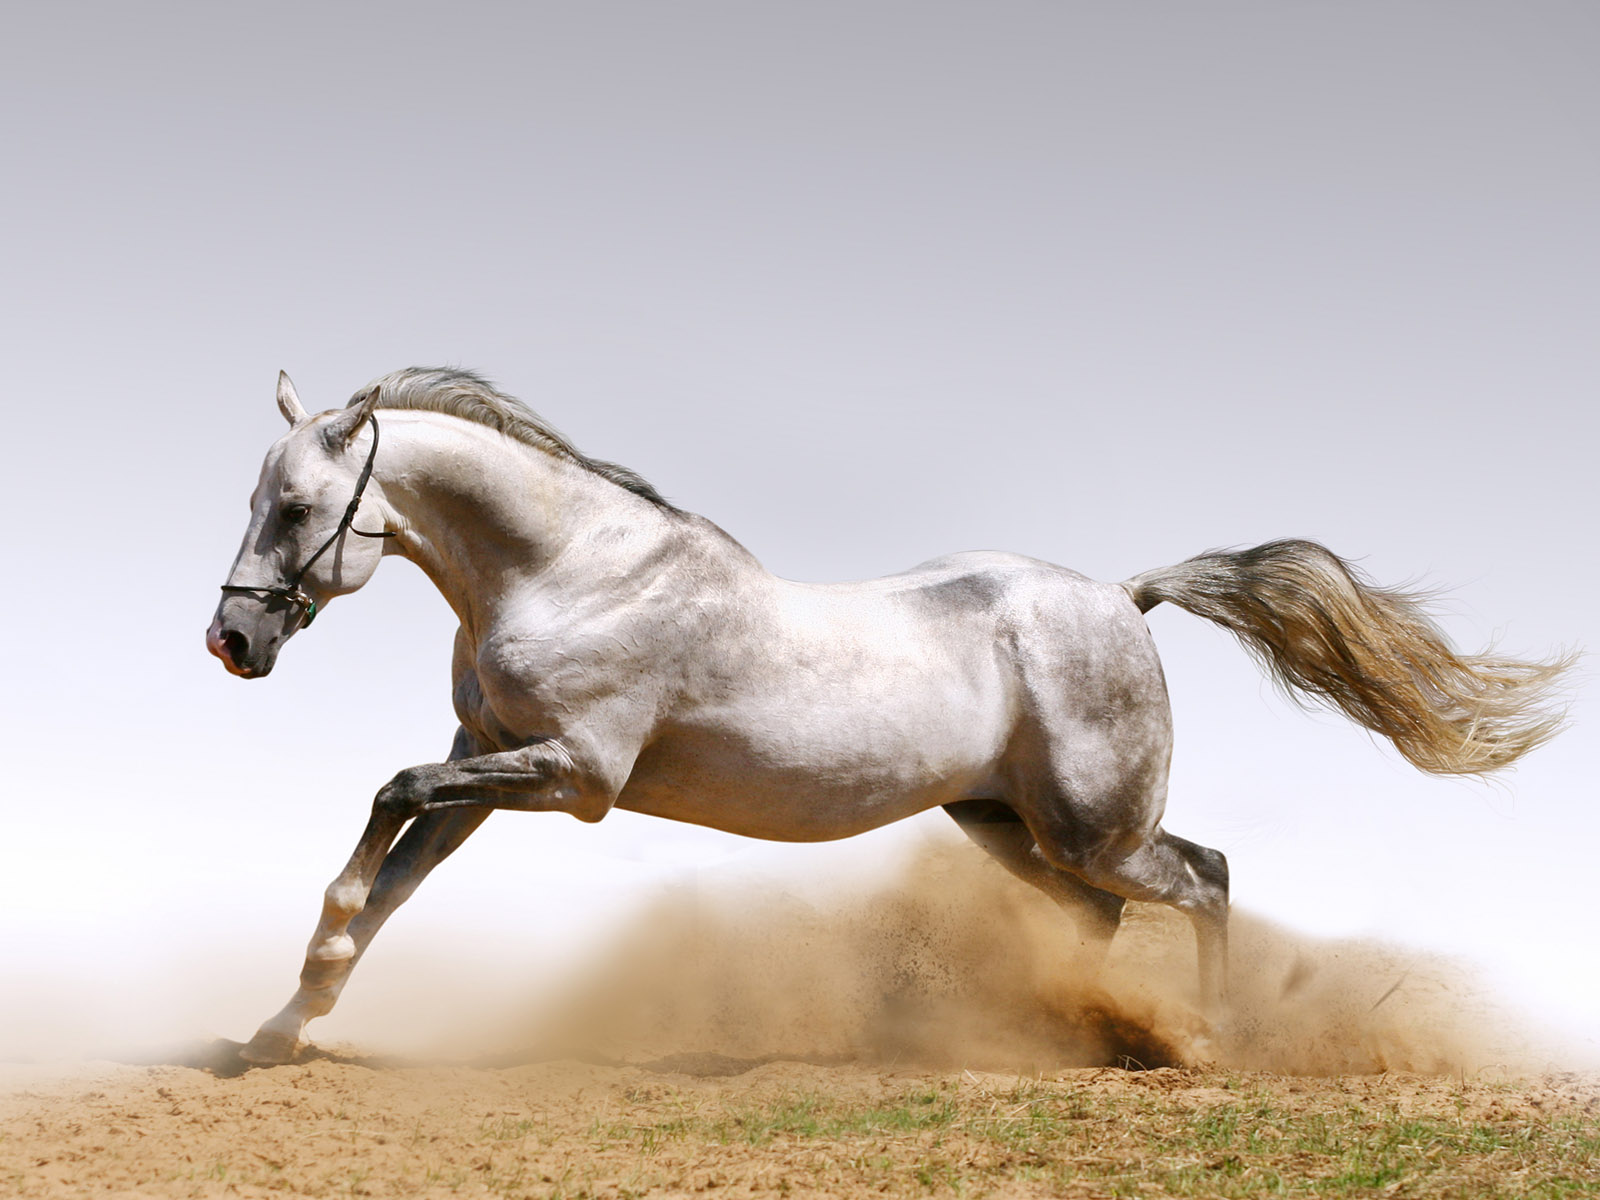 White running horses - photo#3